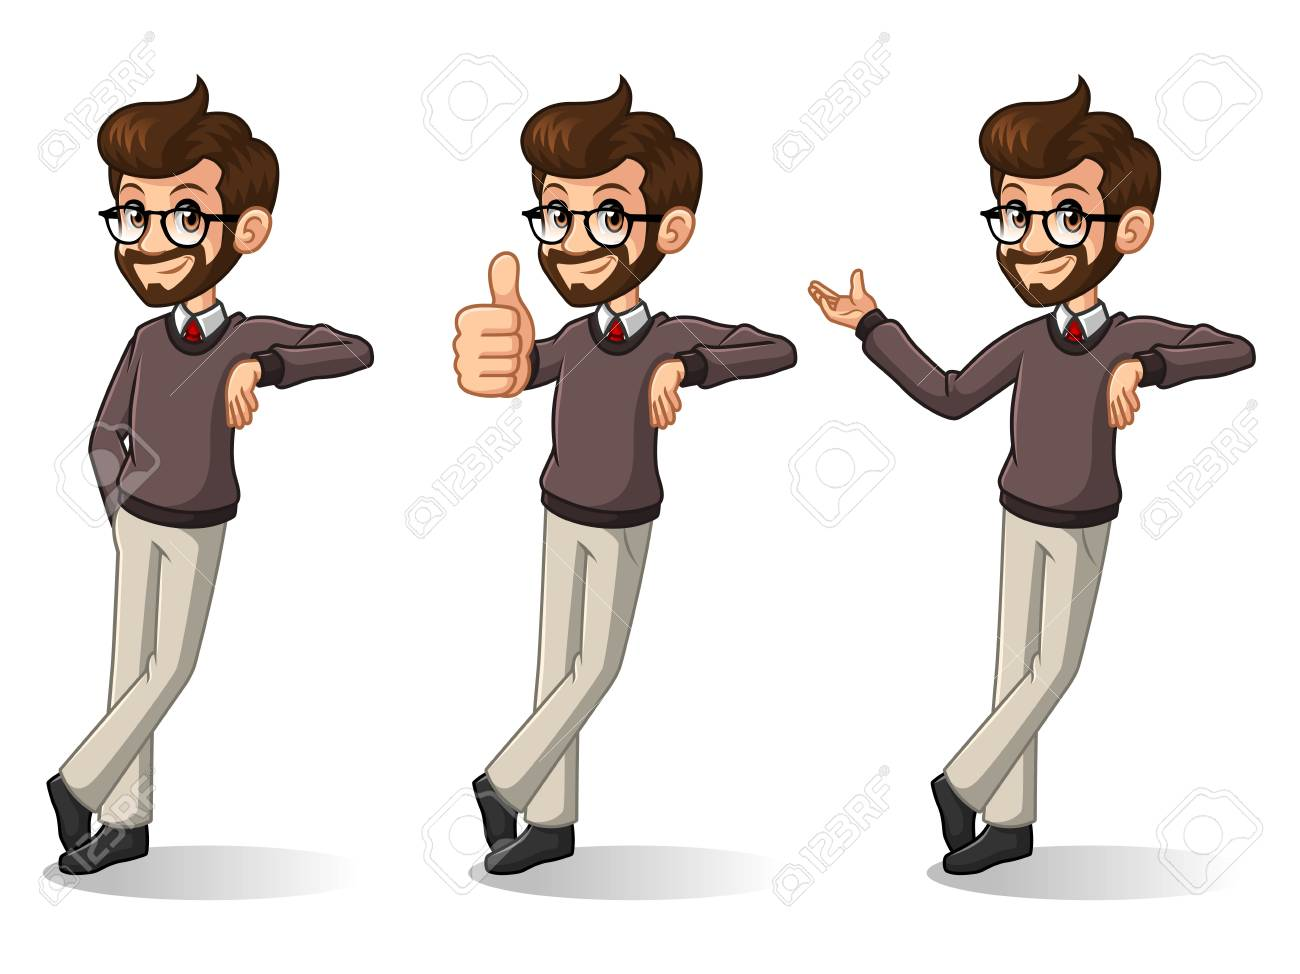 Set of hipster businessman cartoon character design stand leaning against, isolated against white background. - 90863044